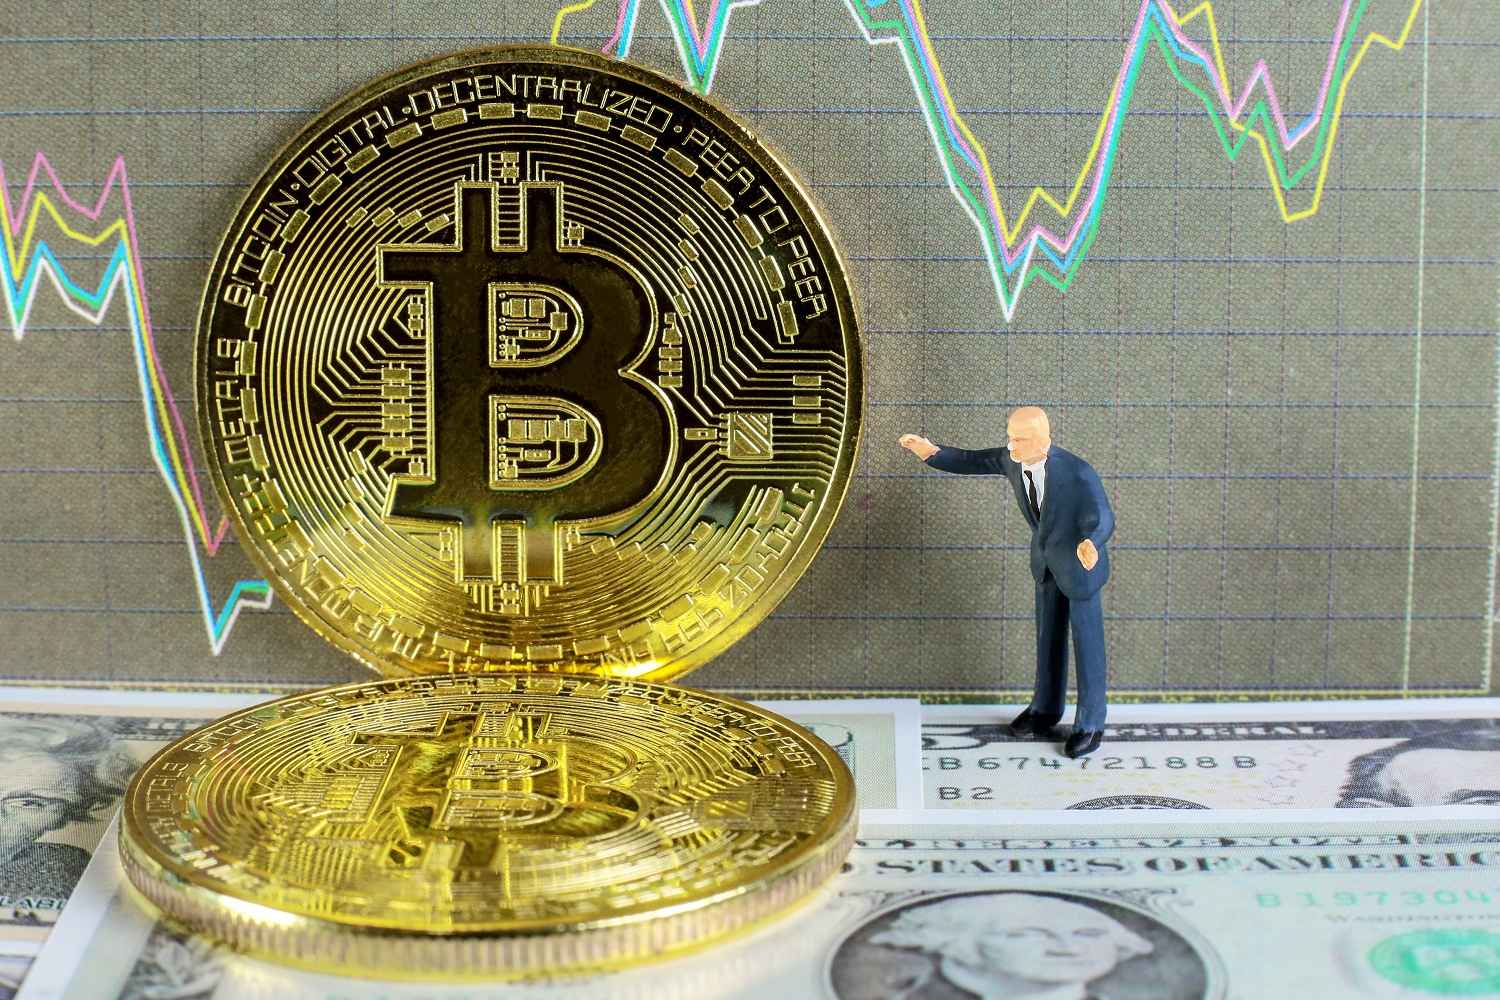 Bitcoin's Sideways Drift Has Shifted Price Recovery Target to $3.7K